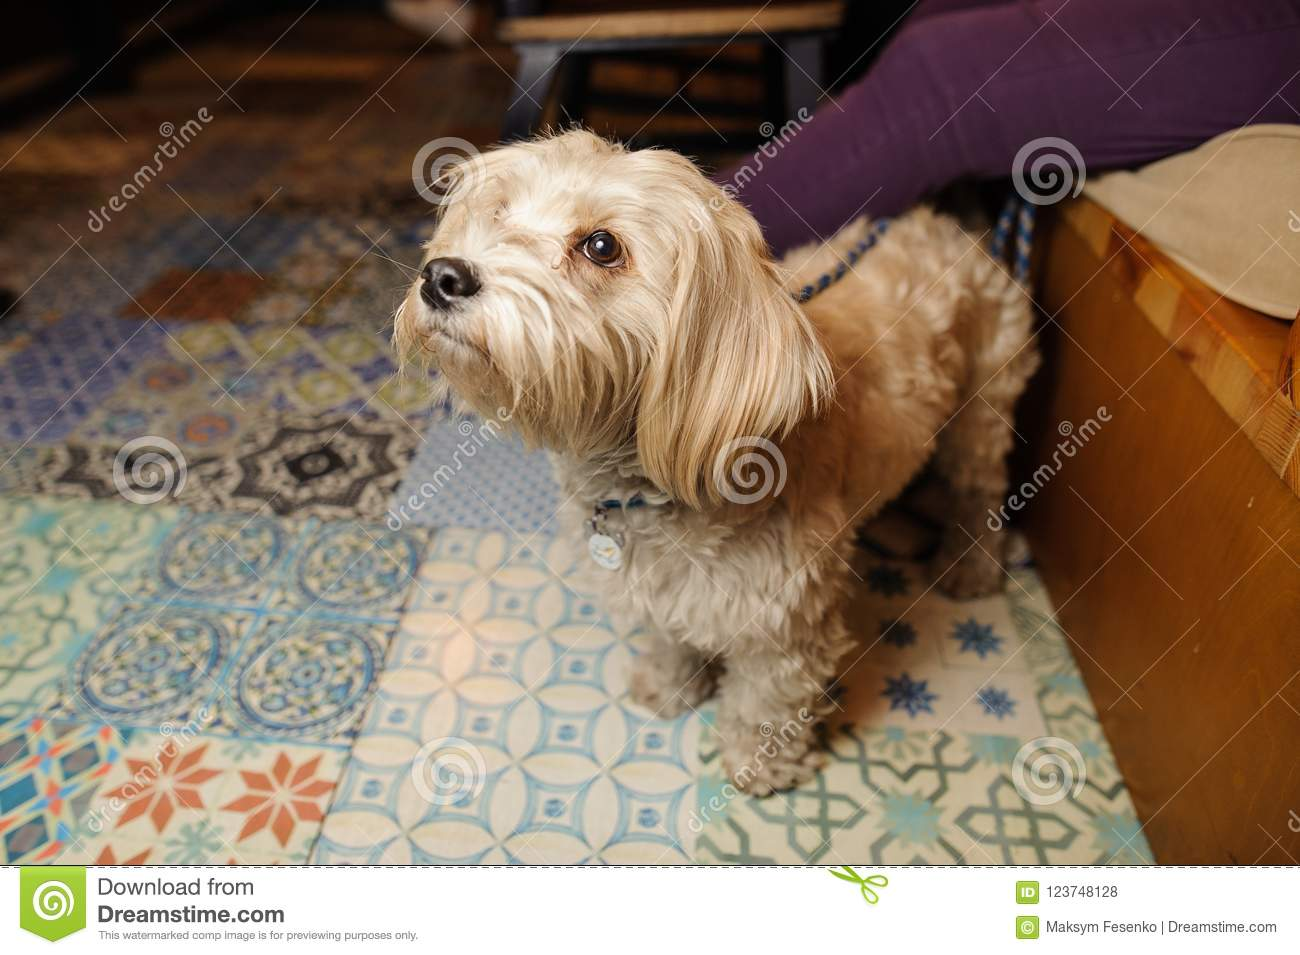 Cute little light brown dog sitting near his owner